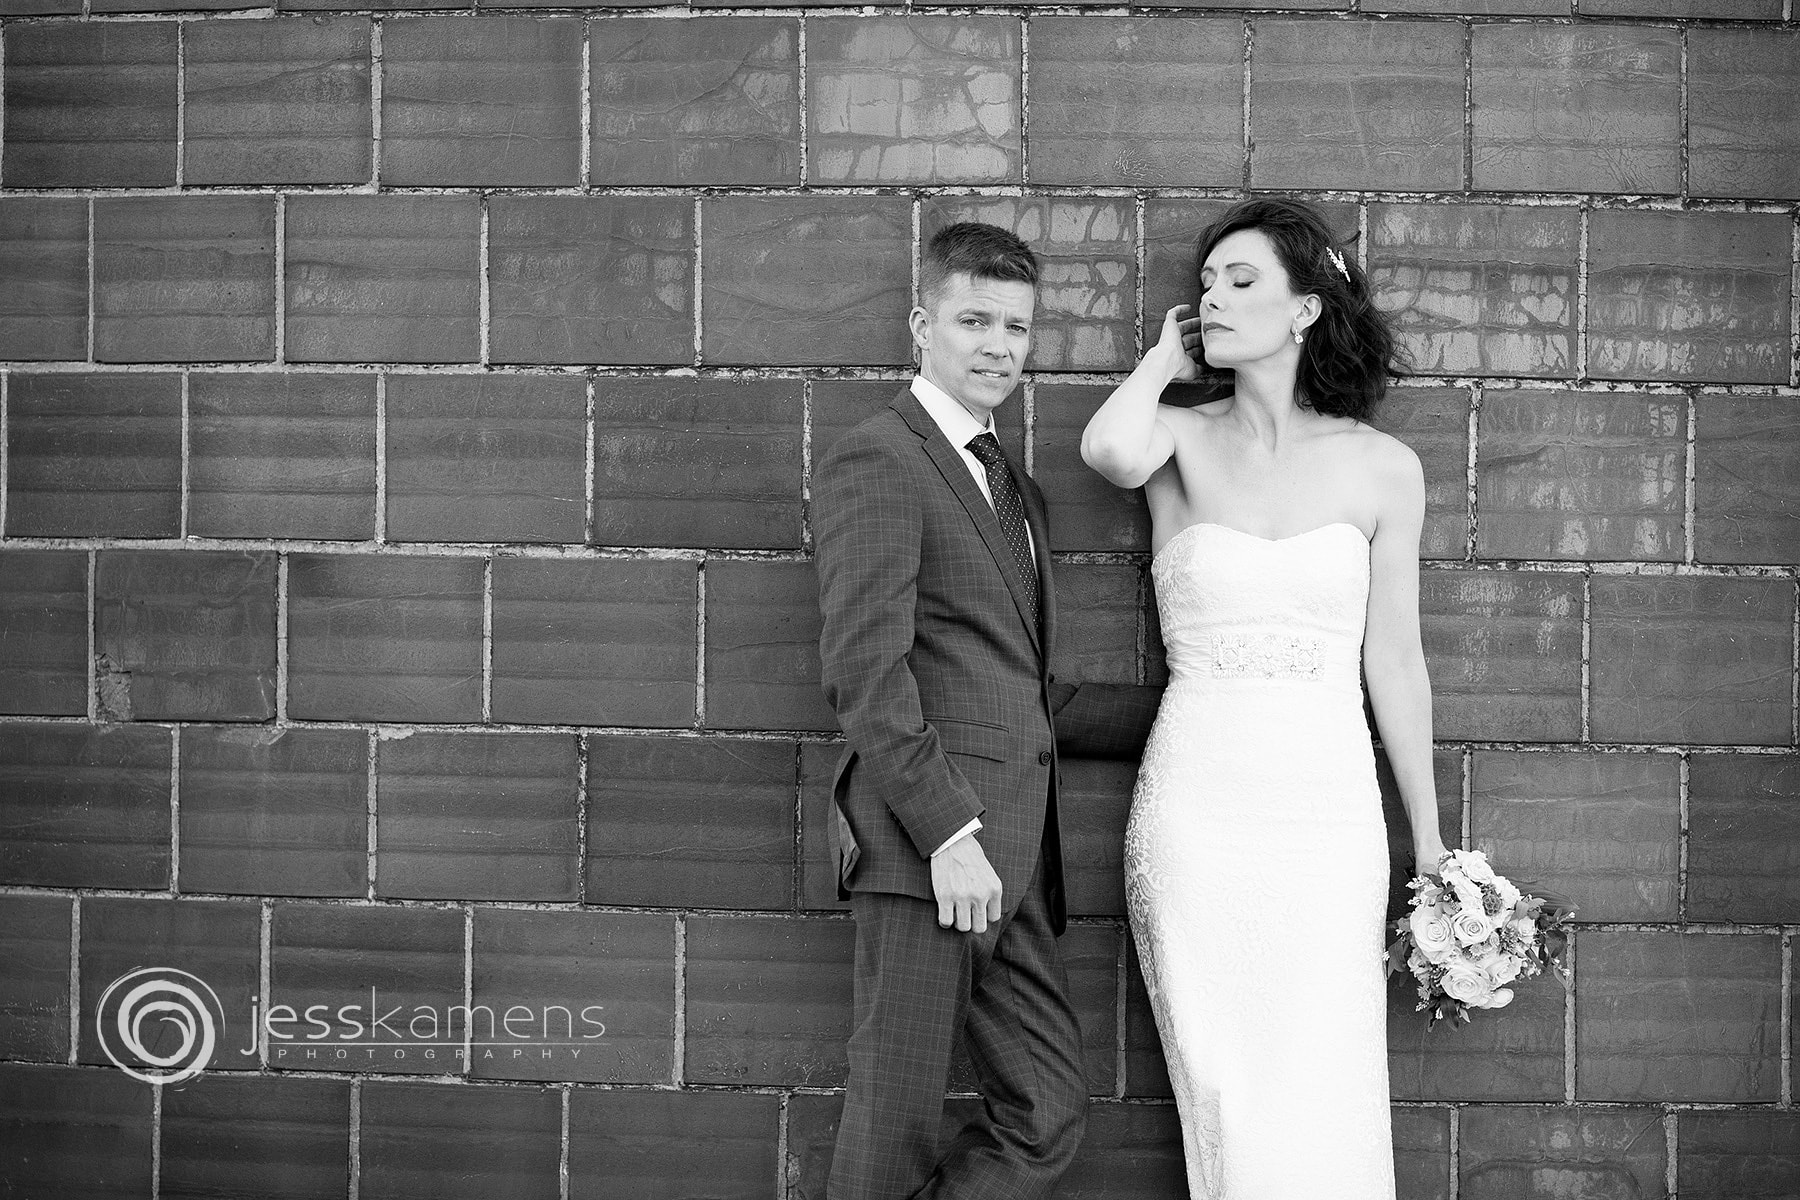 newlyweds pose for their portrait session on their wedding day